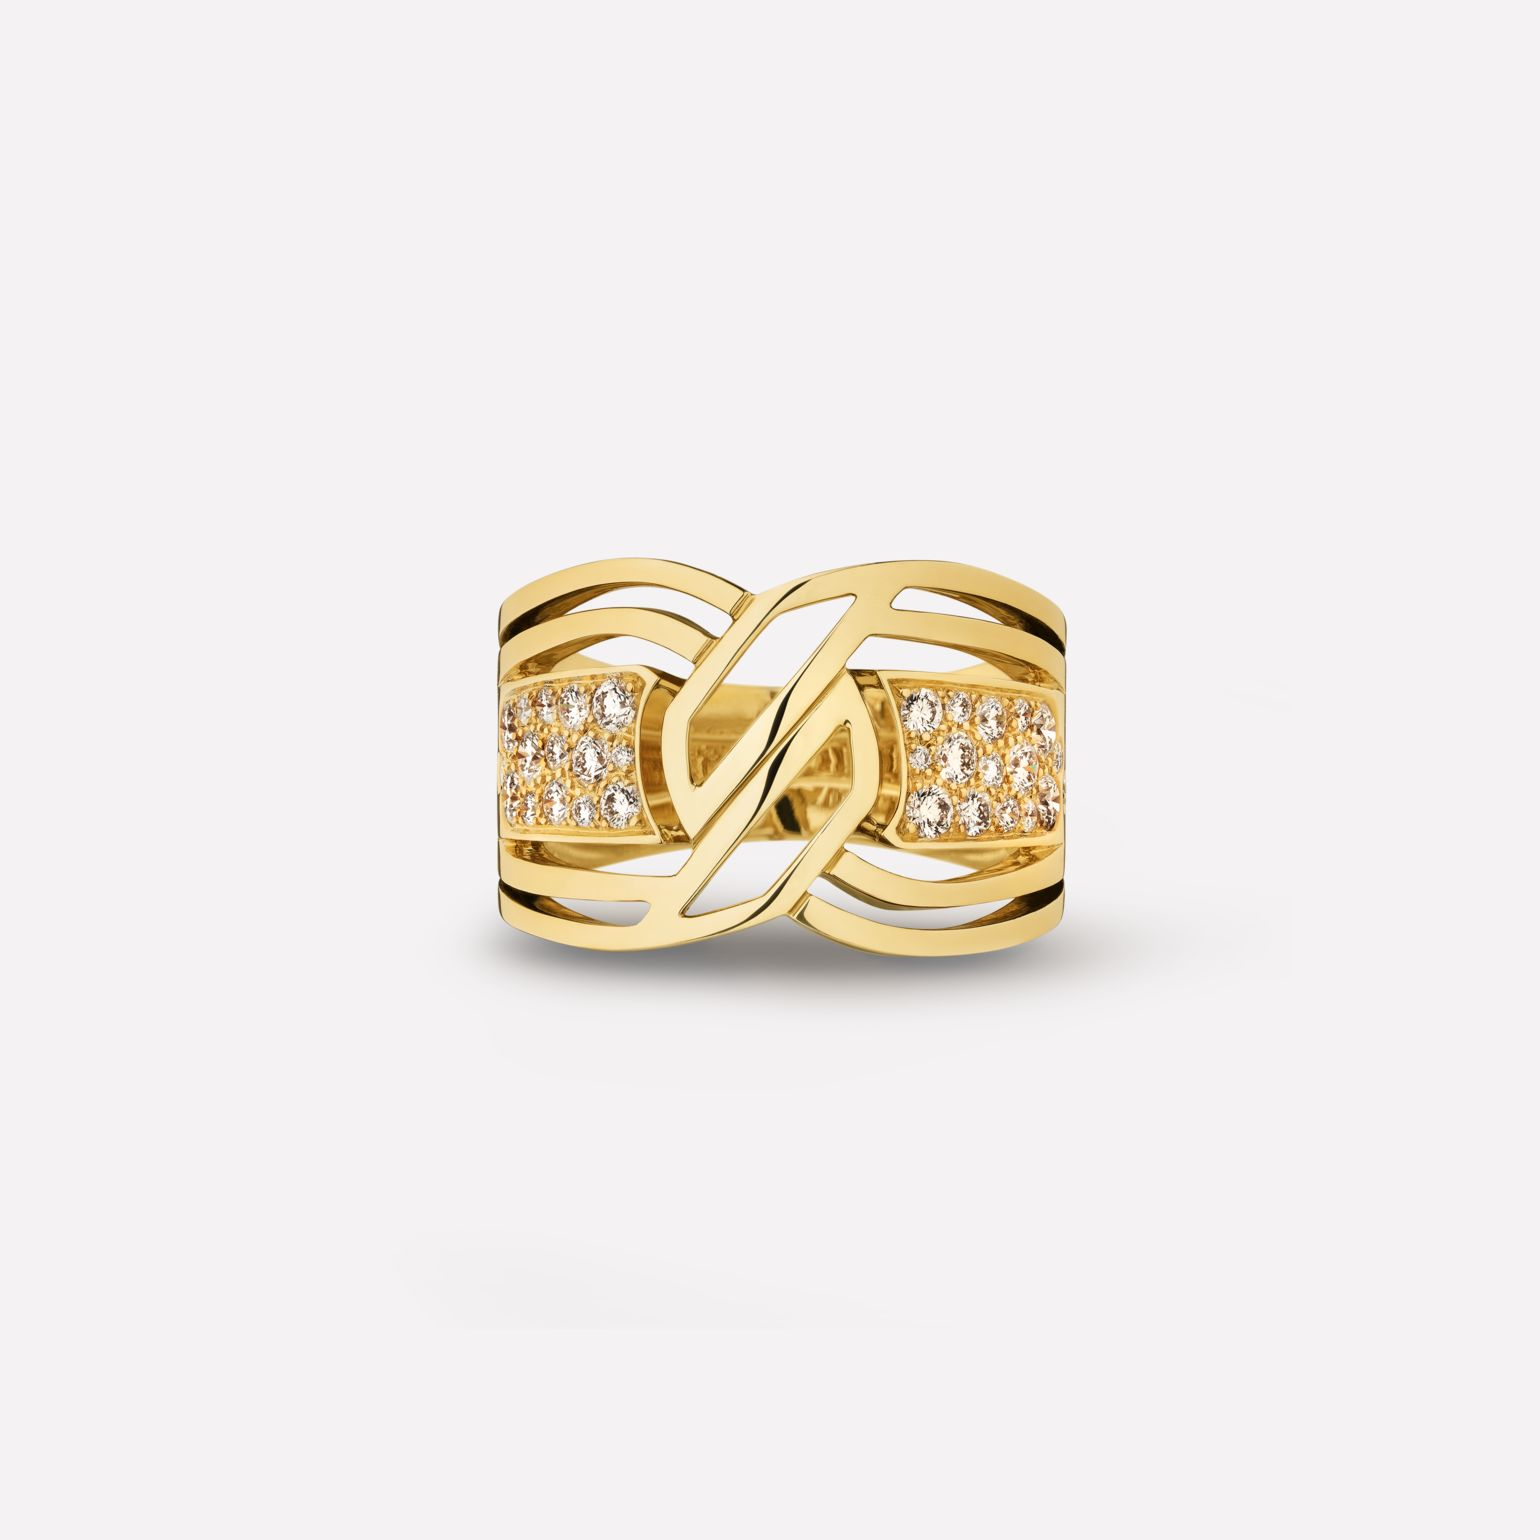 Anello My Golden Link Oro giallo 18 carati e diamanti